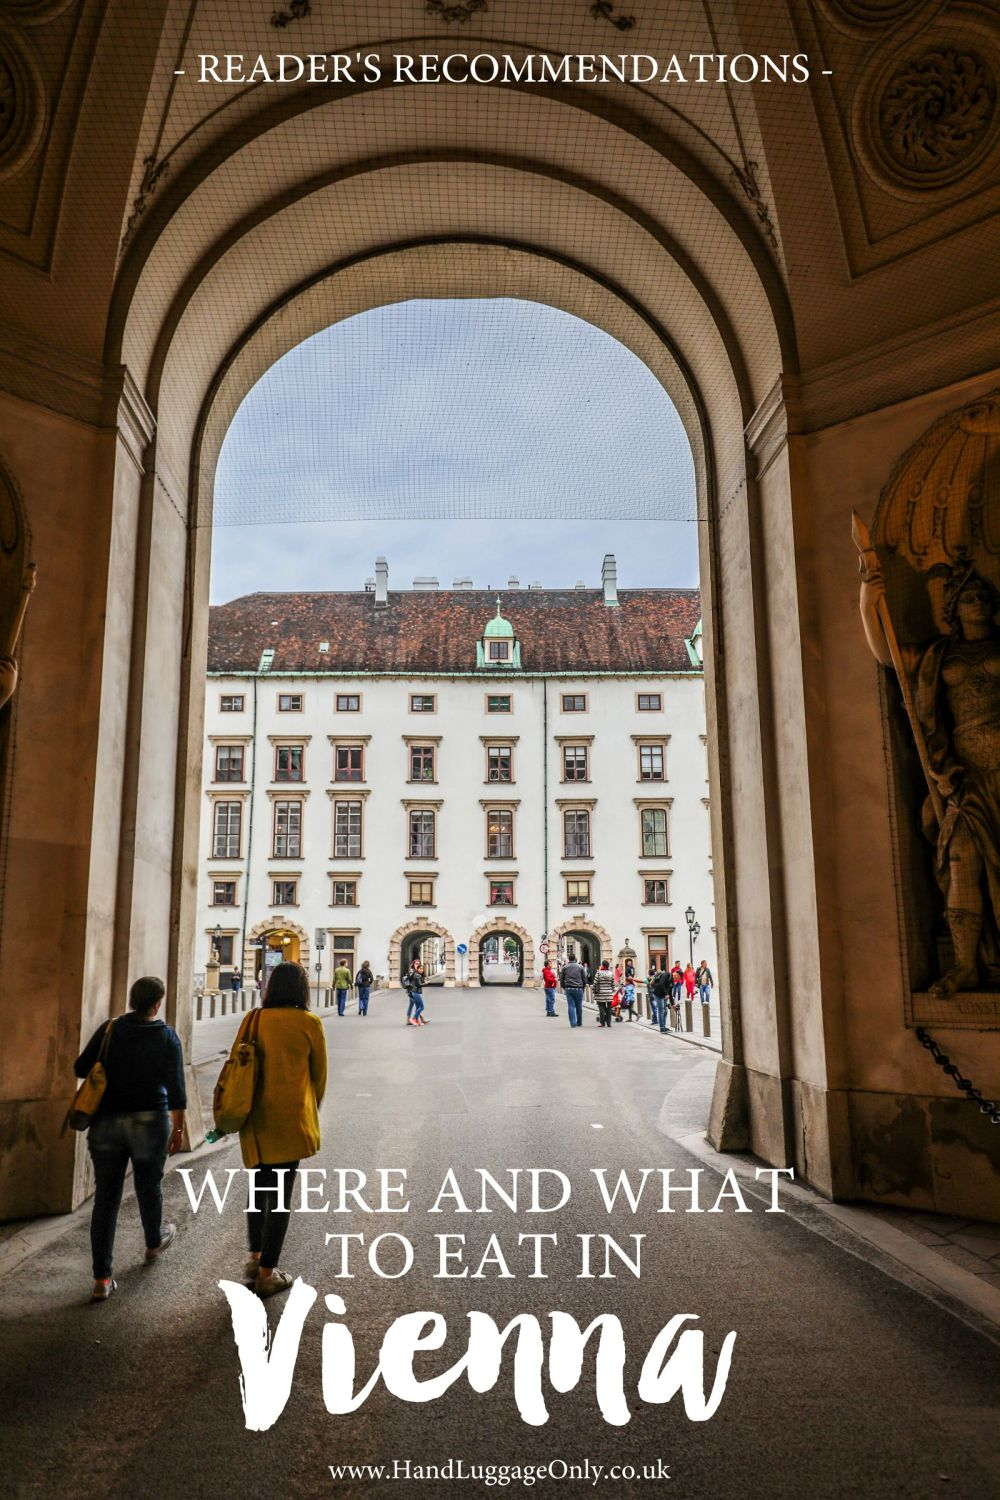 The Best Restaurants, Places And Food To Eat In Vienna - 40 Reader's Recommendations